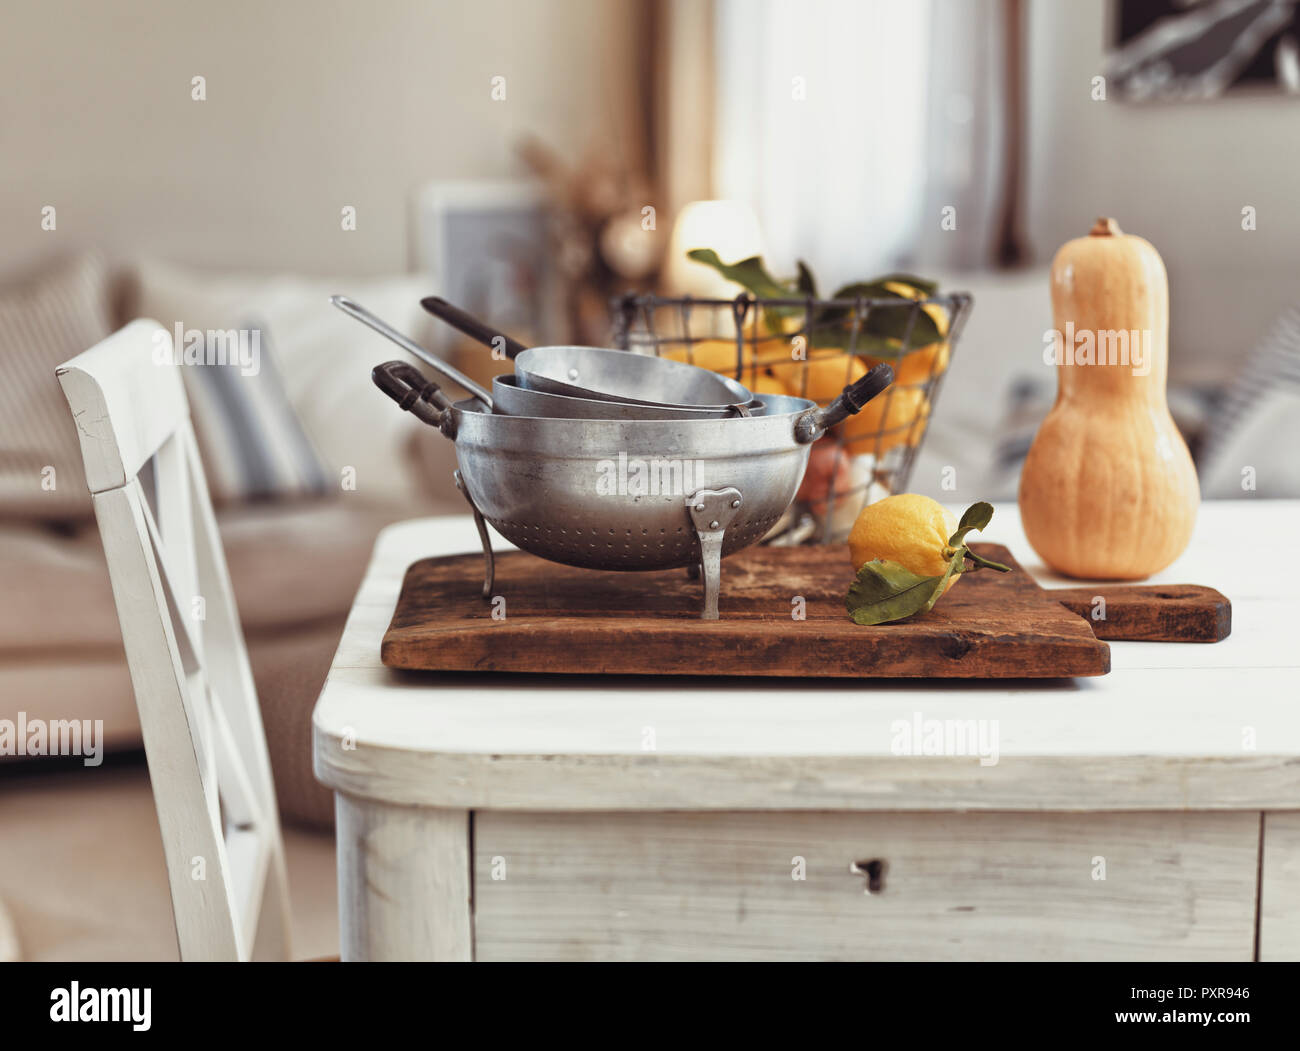 Nostalgic kitchen utensils and fruits on old wooden table - Stock Image